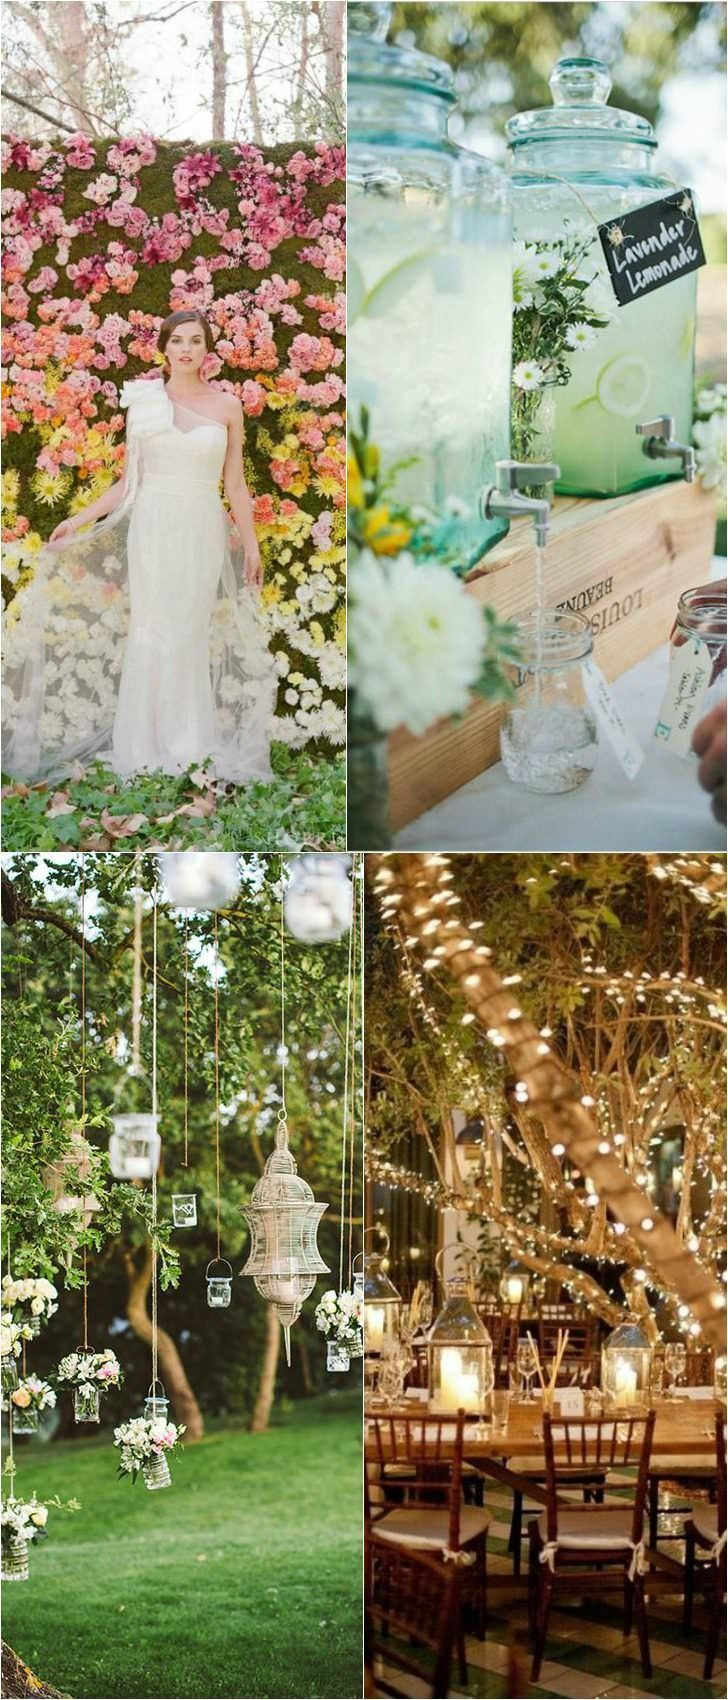 10 Shabby Chic Garden Wedding Decoration Ideas - Garden Decor -  1 – Hanging Bubble Candle Holders  source Elegant Shabby Chic Garden Wedding in Napa Valley with hanging bubble candle holders. 2 – A Romantic Wedding at Bellefield Great House in Jamaica  source 3 – Hanging Wedding Flowers  source As nature reawakes and the weather gets... #weddingdecoration